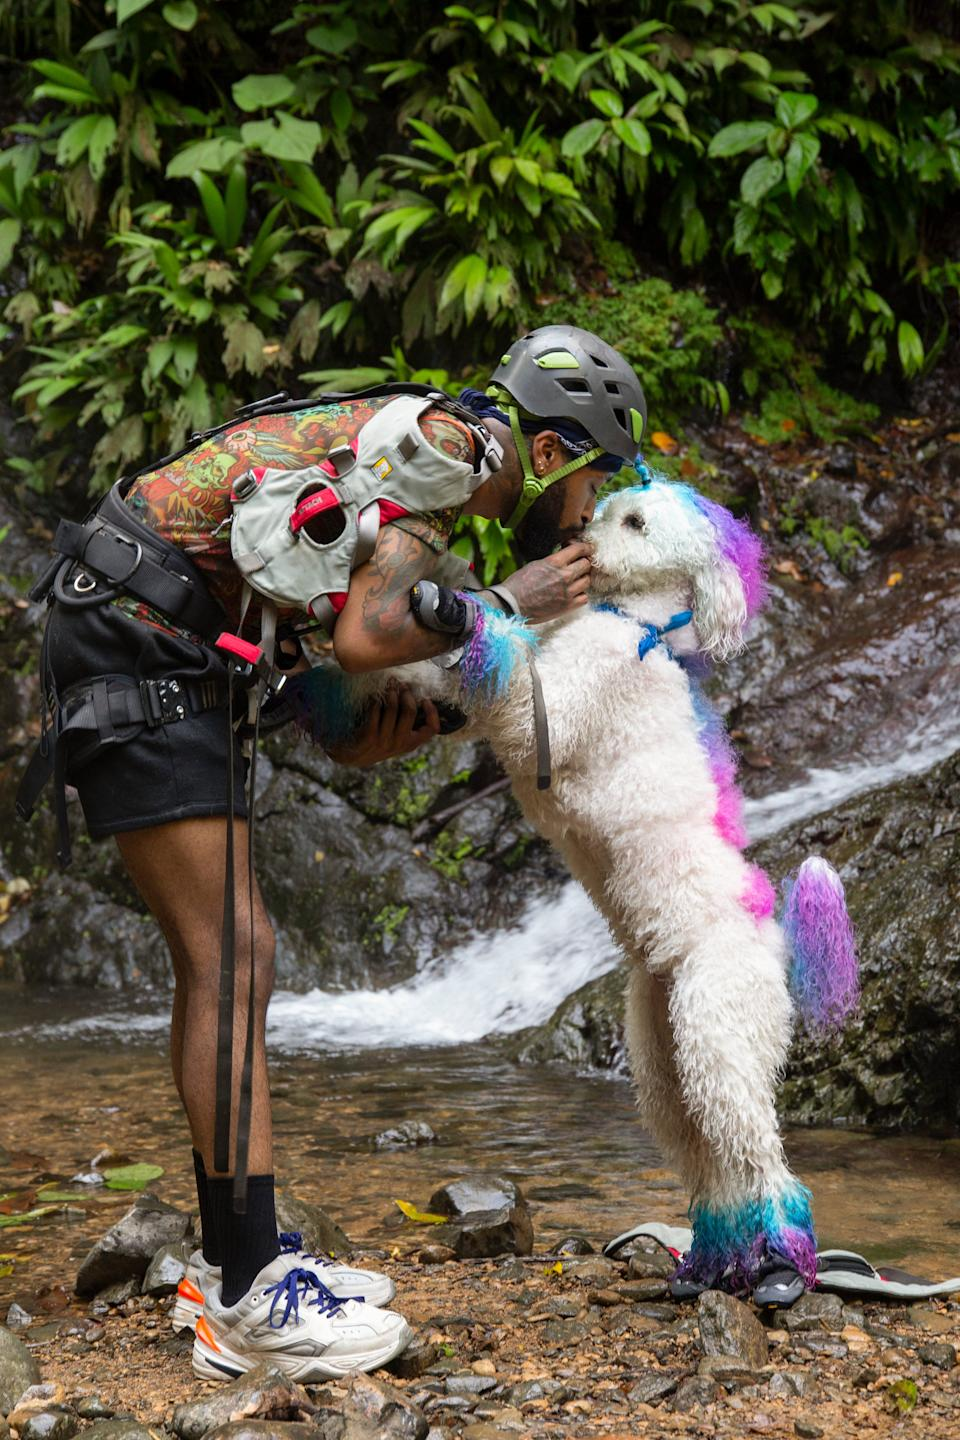 Josh White nuzzles his dog Snow, who rocks colorful fur, when the competition takes them to Costa Rica.